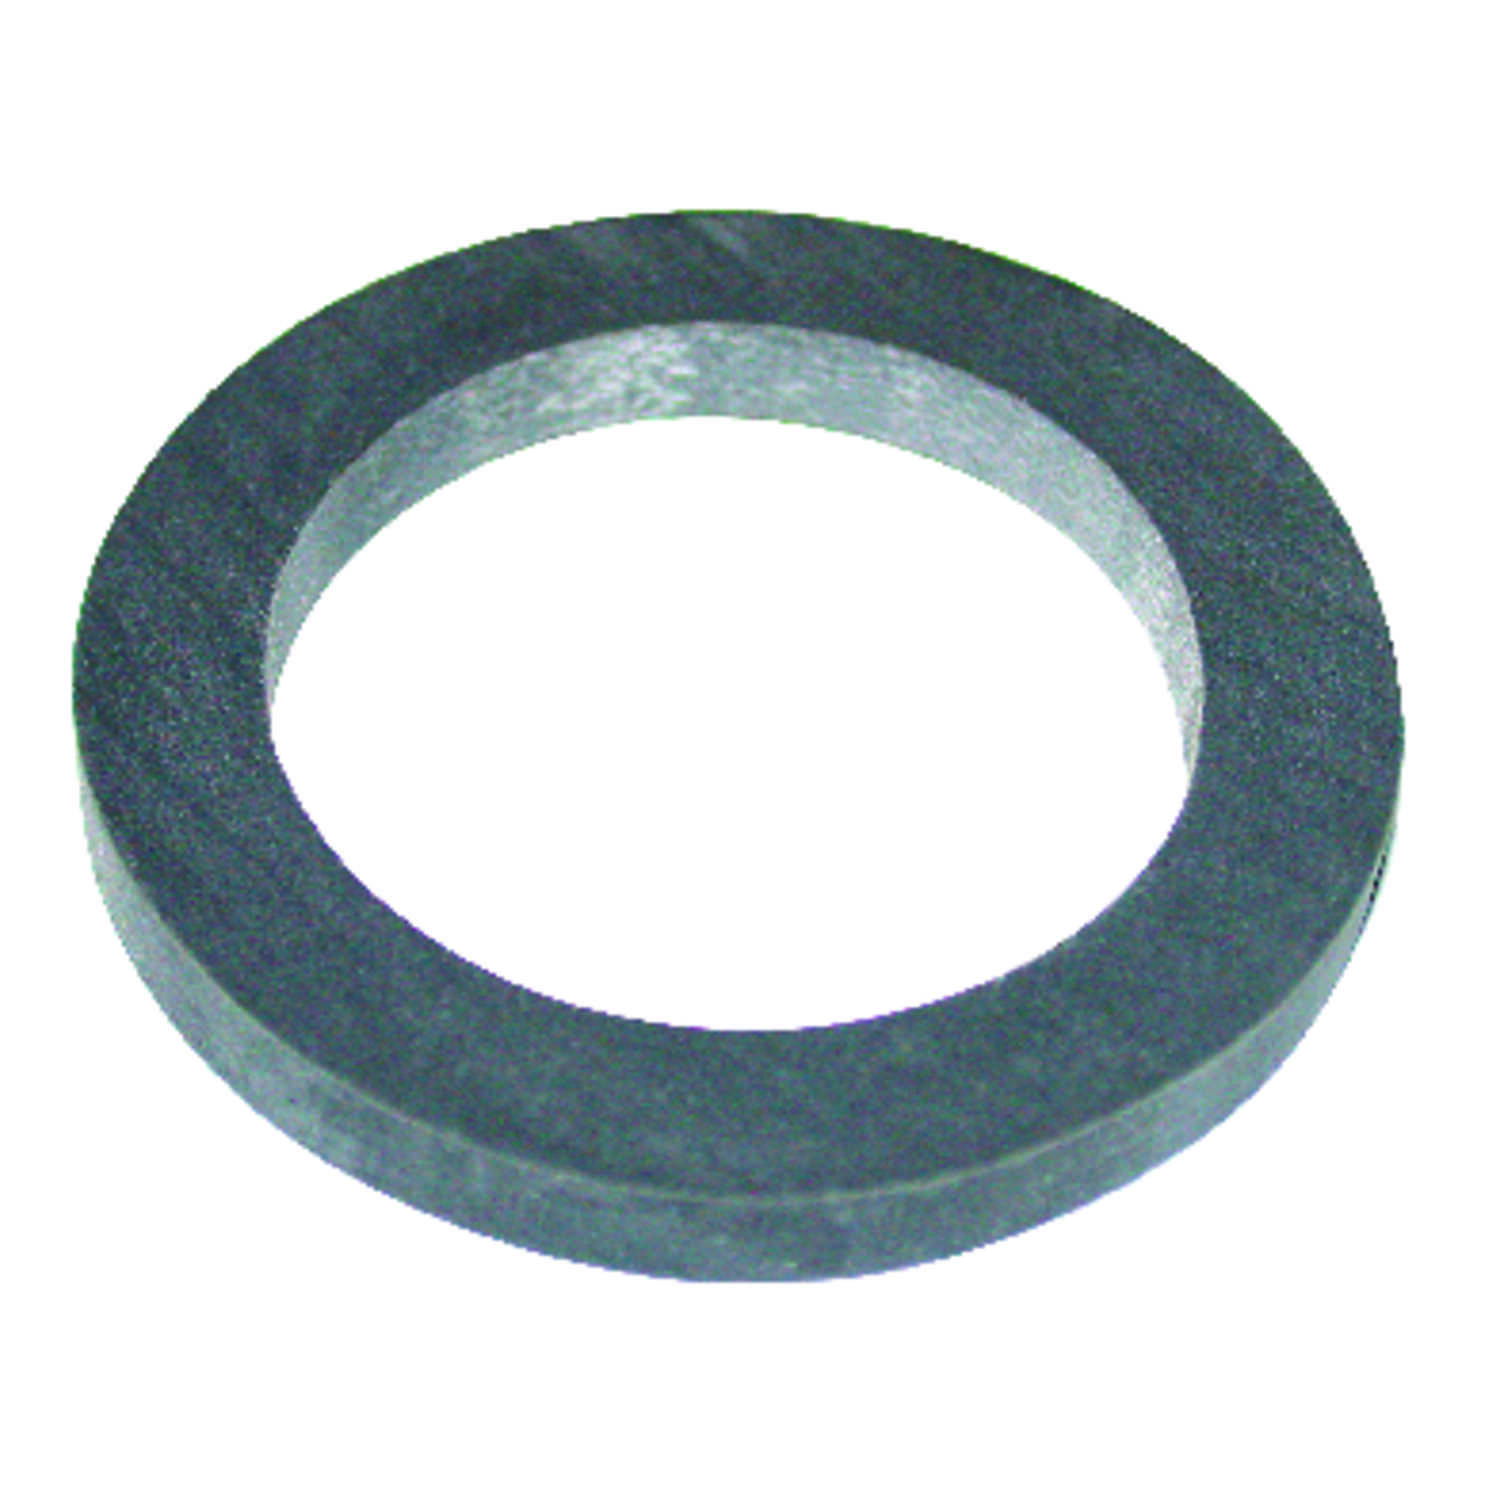 Ace  2 in. Dia. Rubber  Slip Joint Washer  2 pk